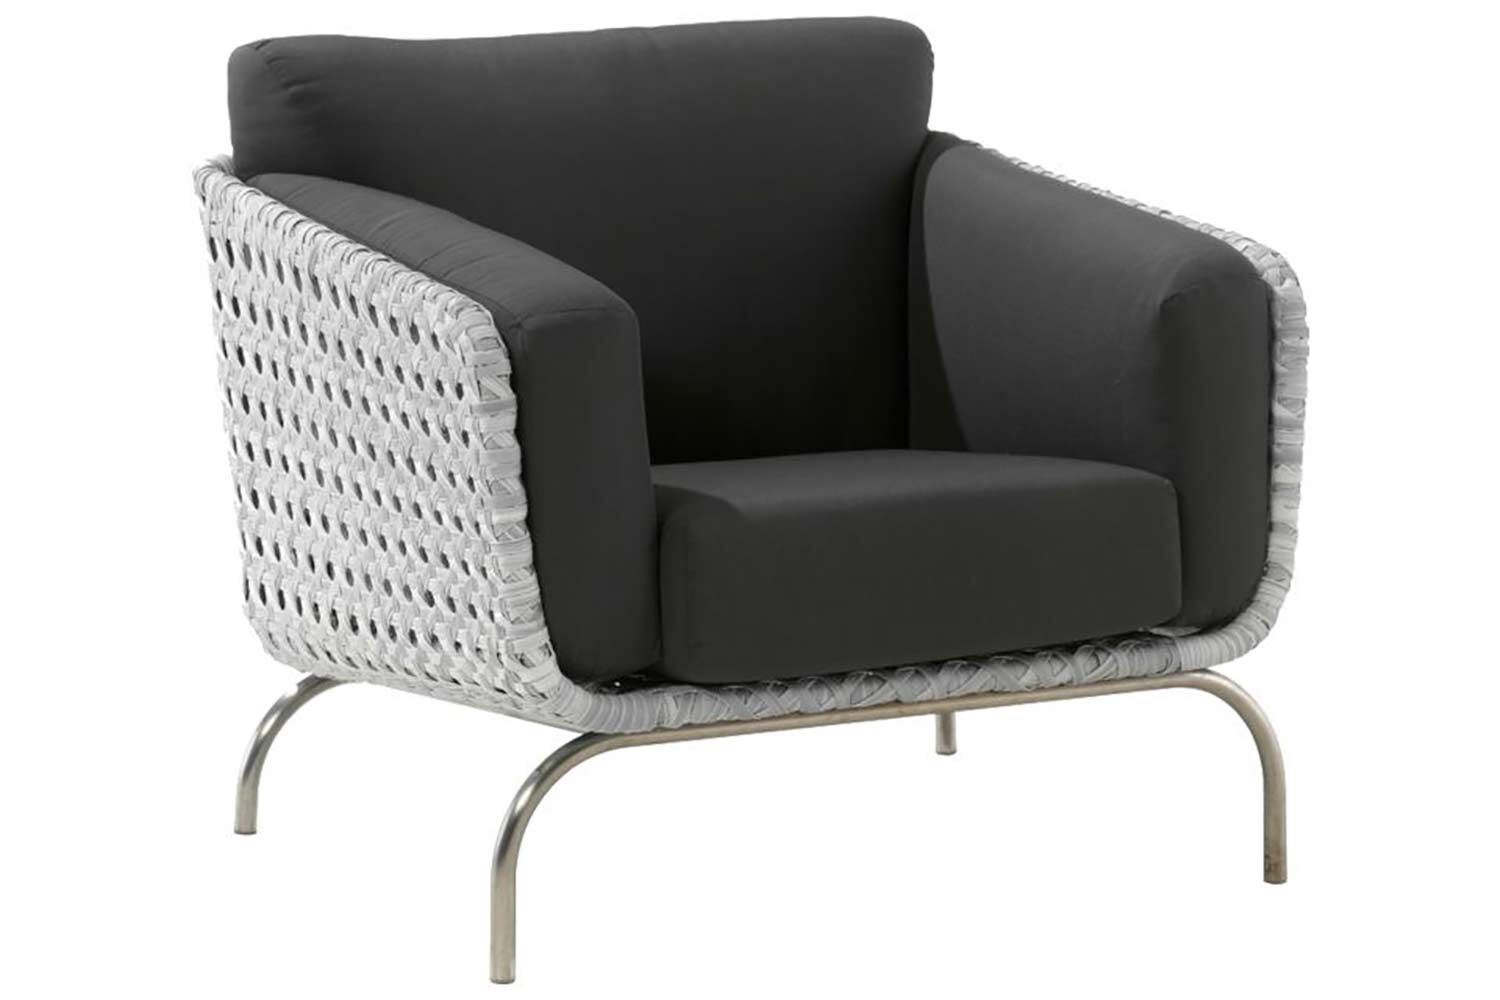 4 Seasons Outdoor Luton living chair with 4 cushions and cover